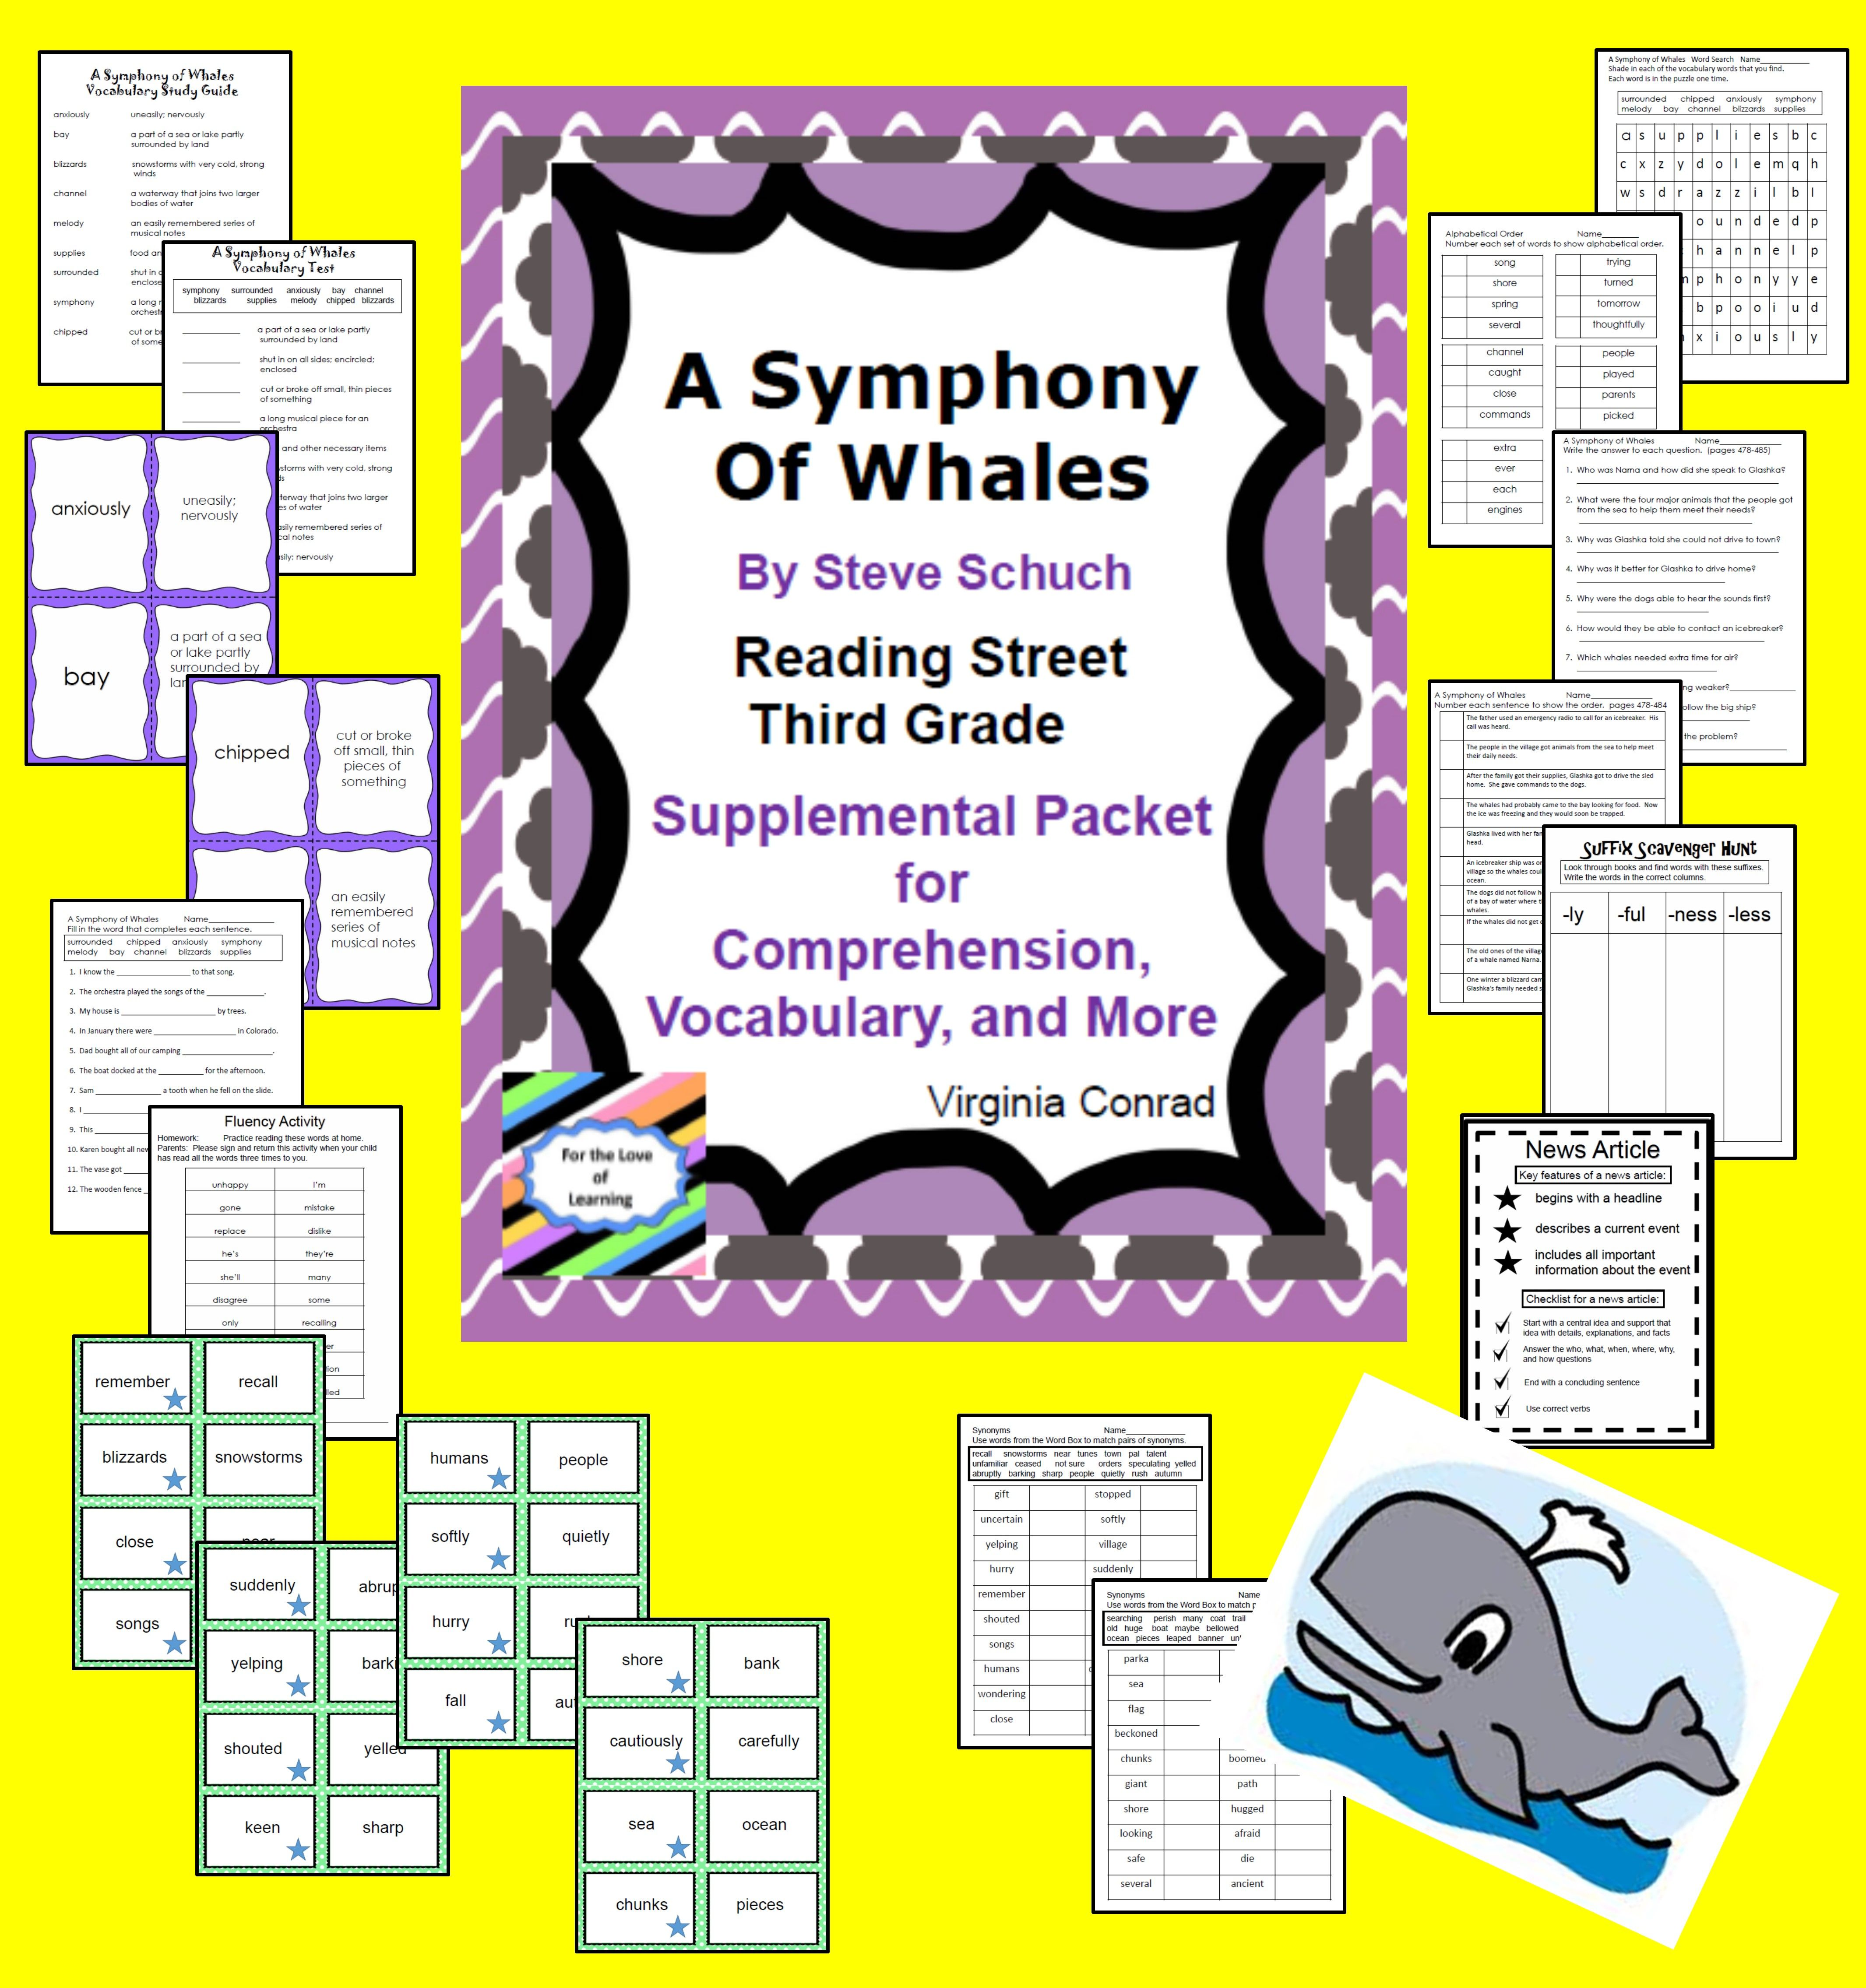 A Symphony Of Whales Supplemental Packet Reading Street Third Grade